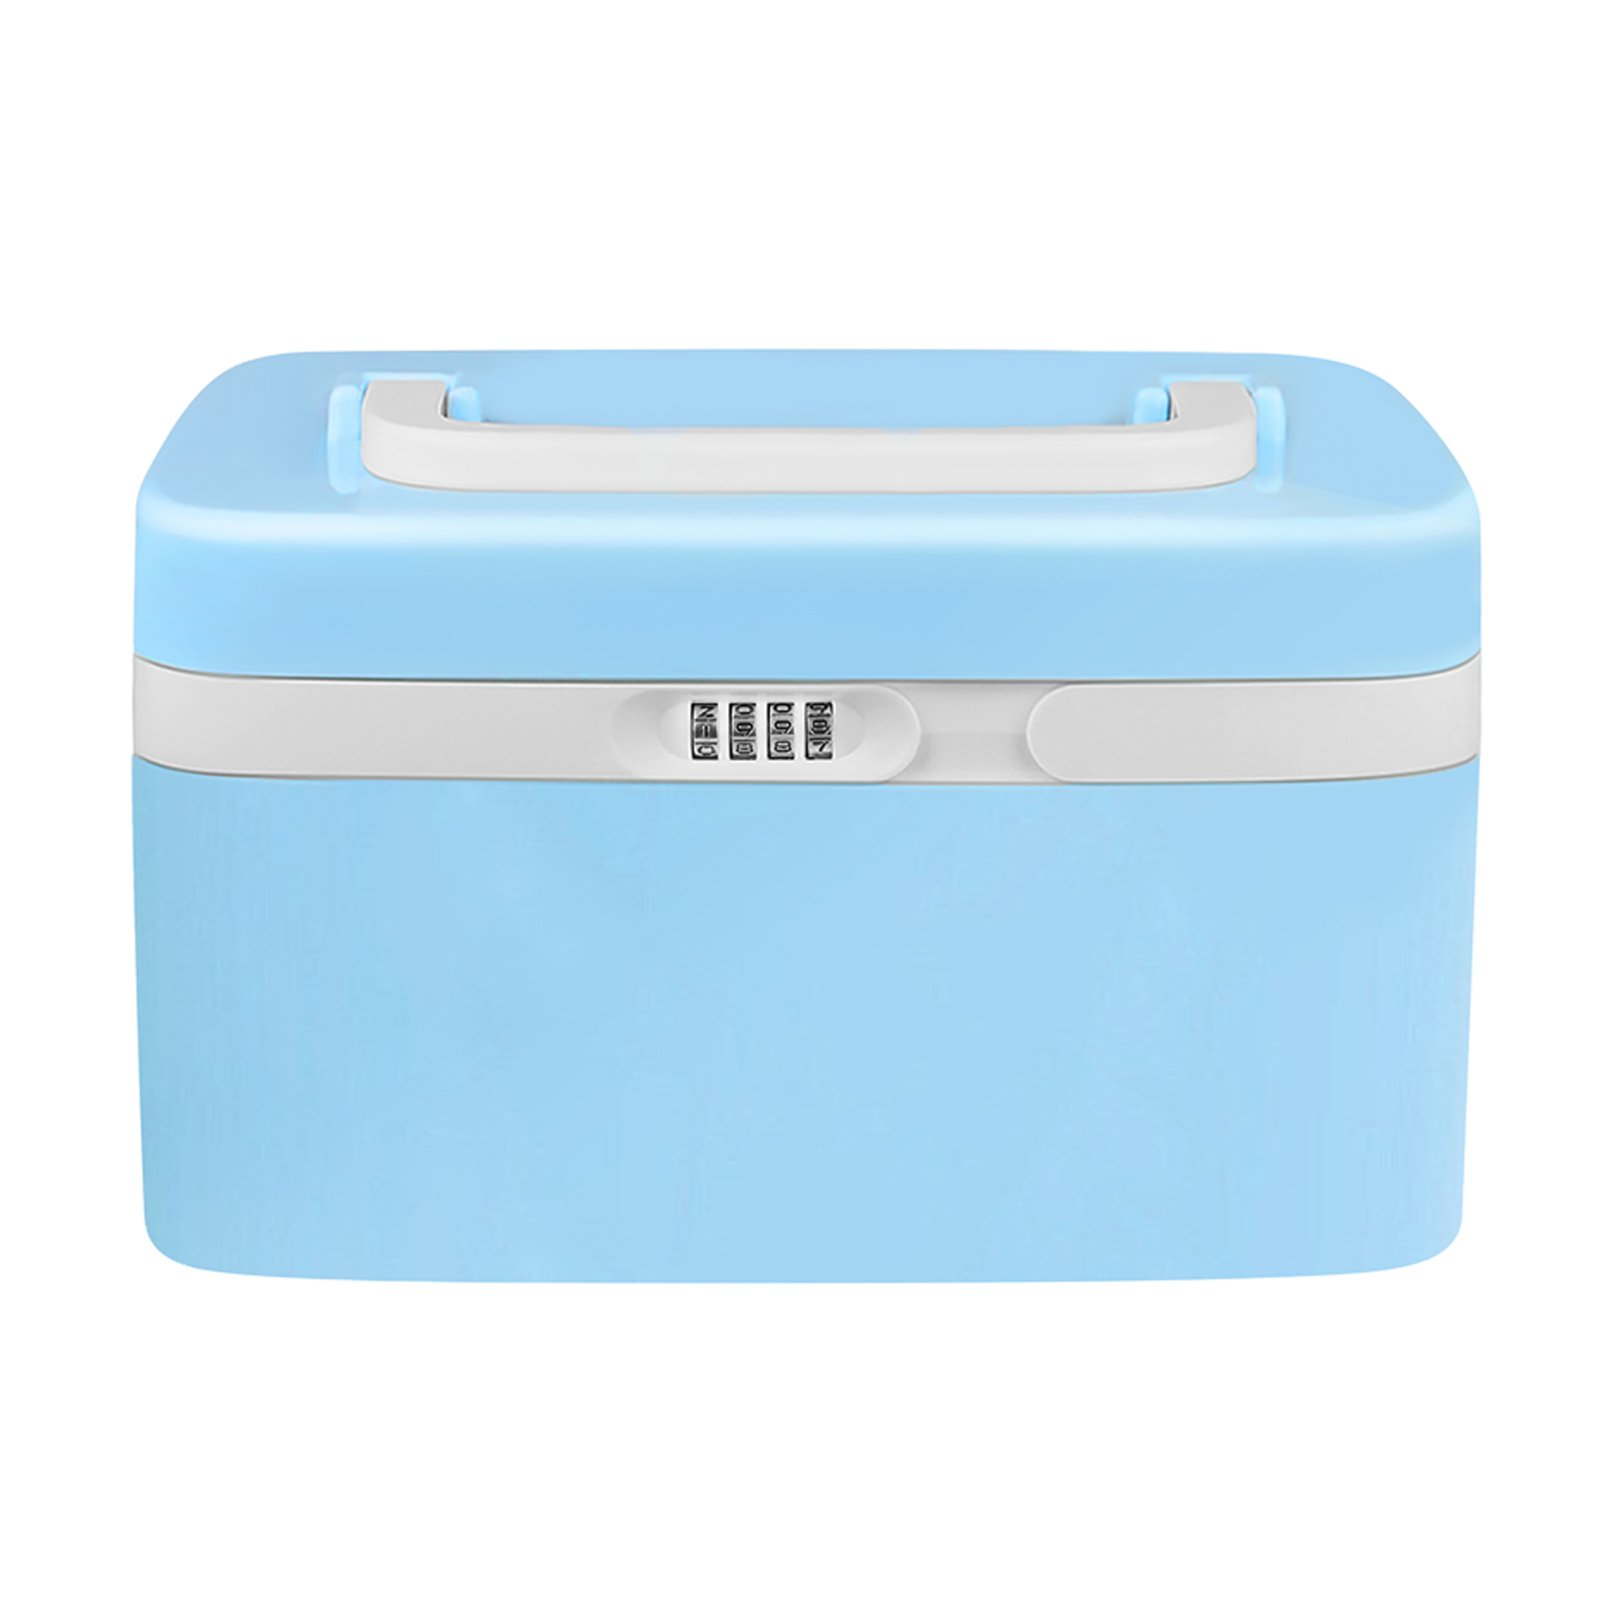 eoere Combination Lock Medicine Cabinet with Separate Compartments,Locking Prescription Pill Case,Child Proof Plastic Storage Box, Size 11 x 7.4 x 6.2 inches, Blue by eoere